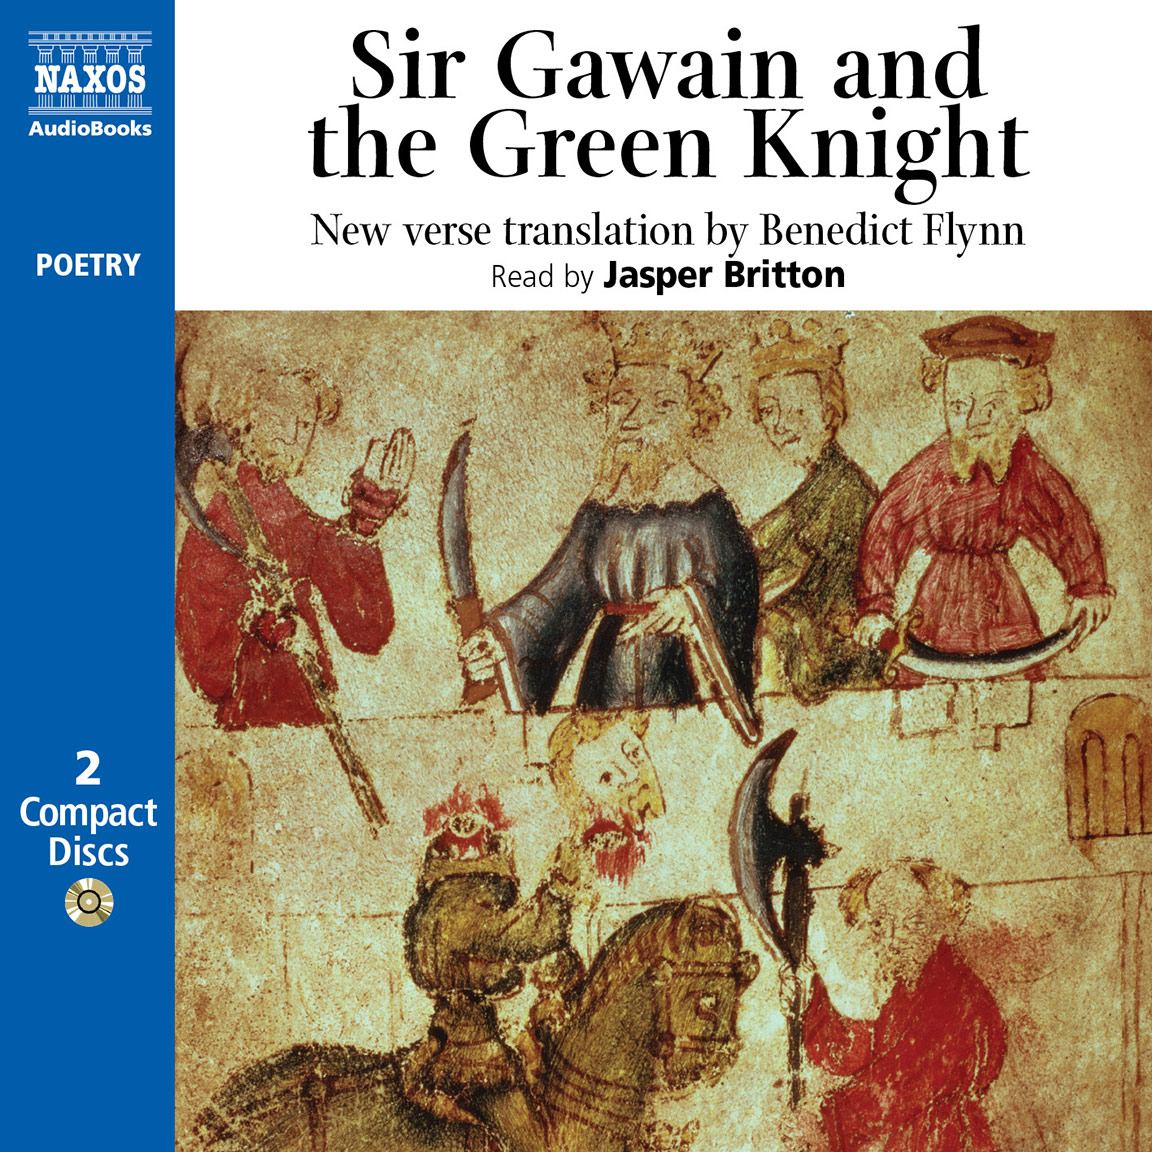 Sir Gawain and the Green Knight (unabridged)